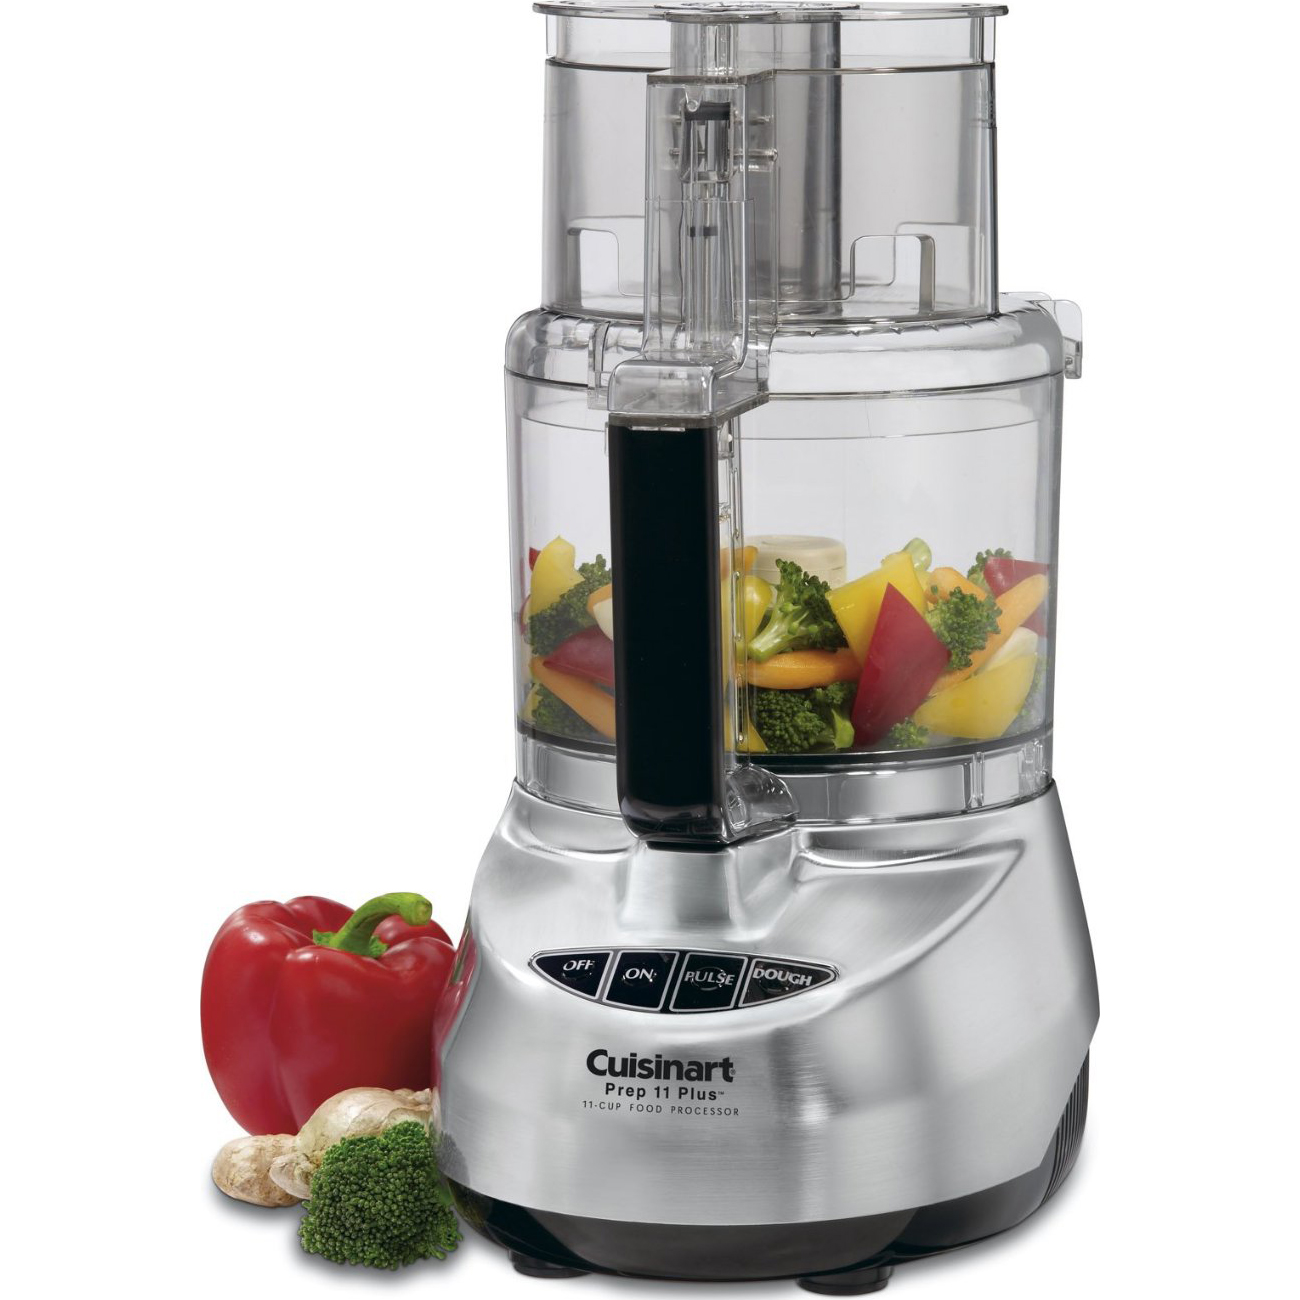 Cuisinart Prep 11 Plus 11-Cup  Food Processor, Stainless Steel